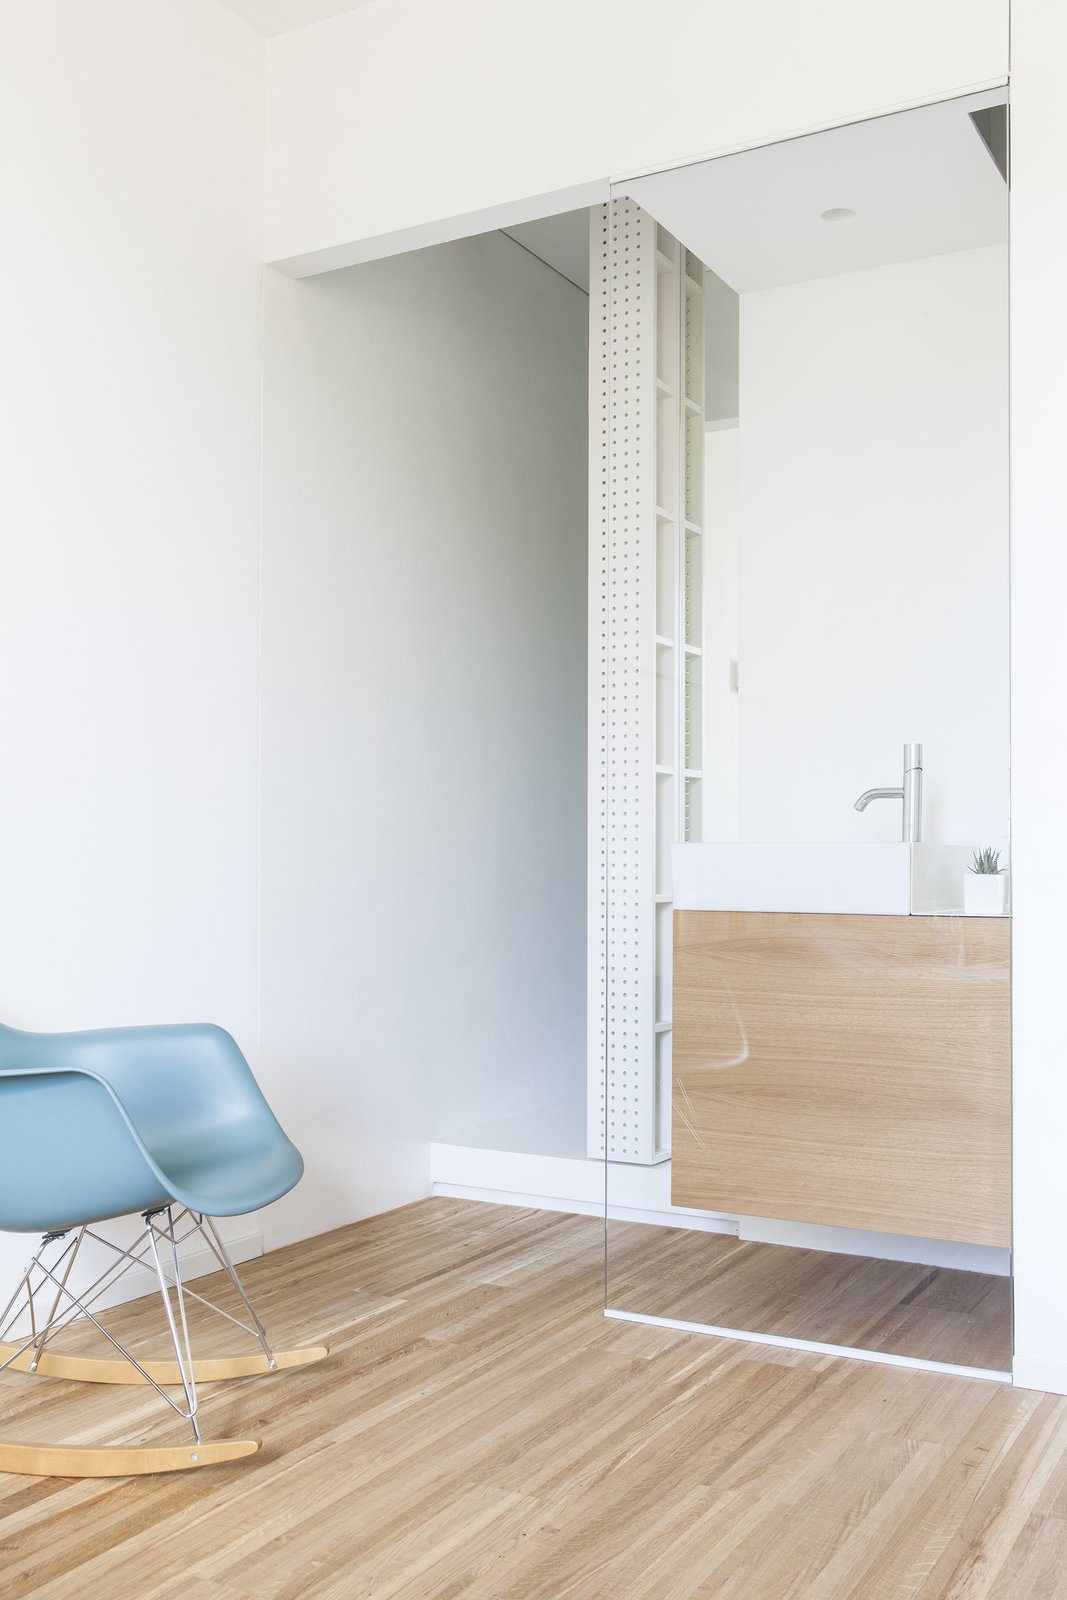 Tagged: Bath Room, Wood Counter, Medium Hardwood Floor, Concrete Floor, Wall Lighting, Full Shower, Vessel Sink, Ceiling Lighting, Concrete Wall, and One Piece Toilet. Interior LP by Didonè Comacchio